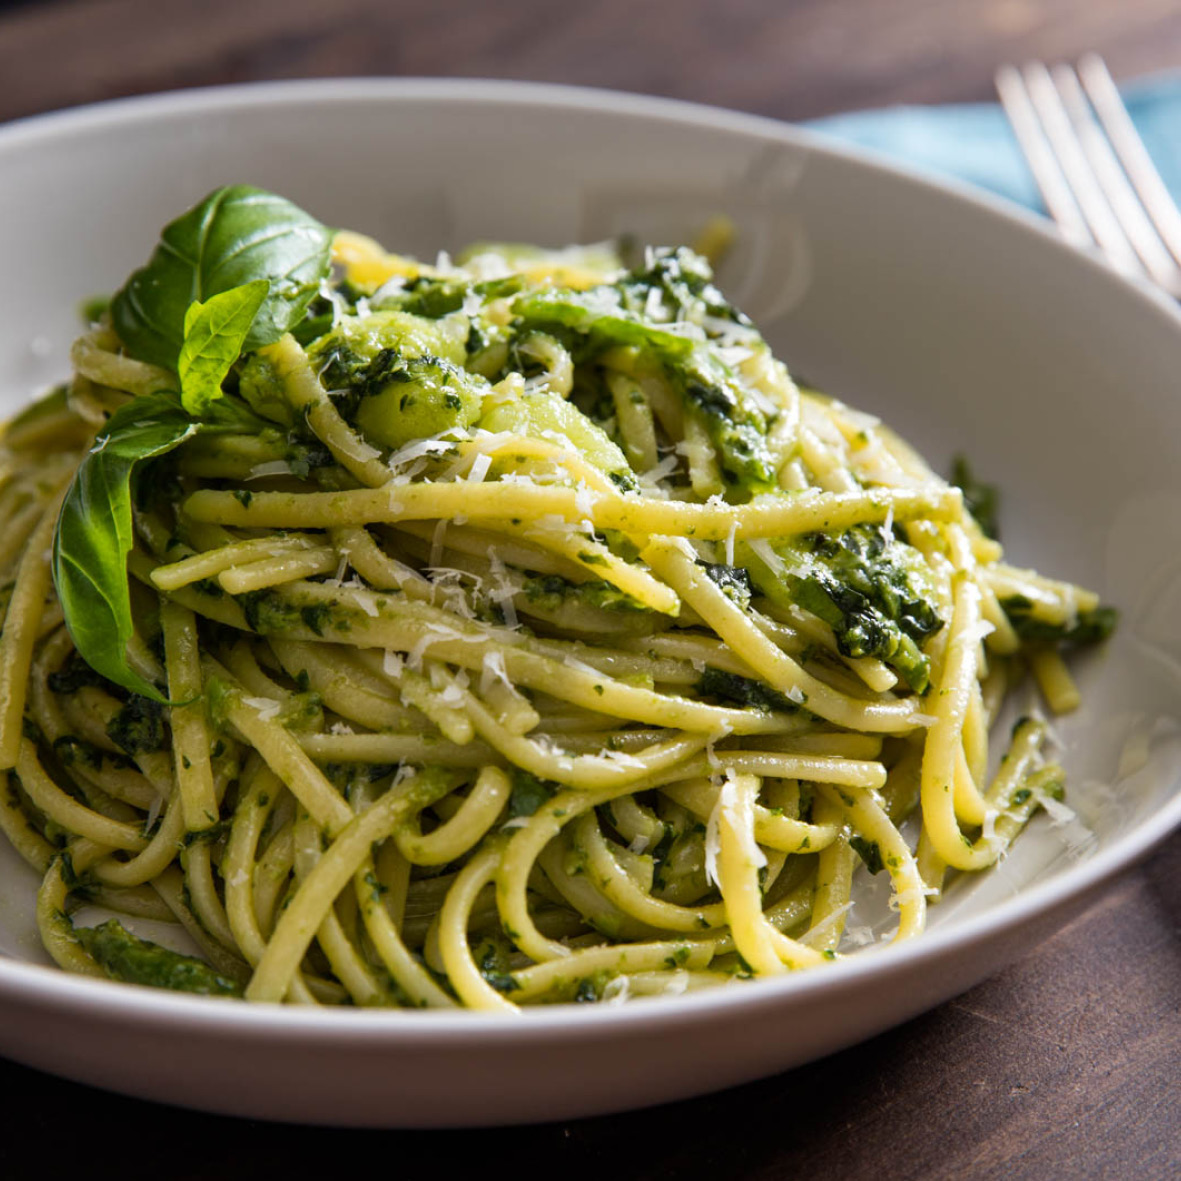 Trenette_with_pesto_potato_and_green_beans.jpg